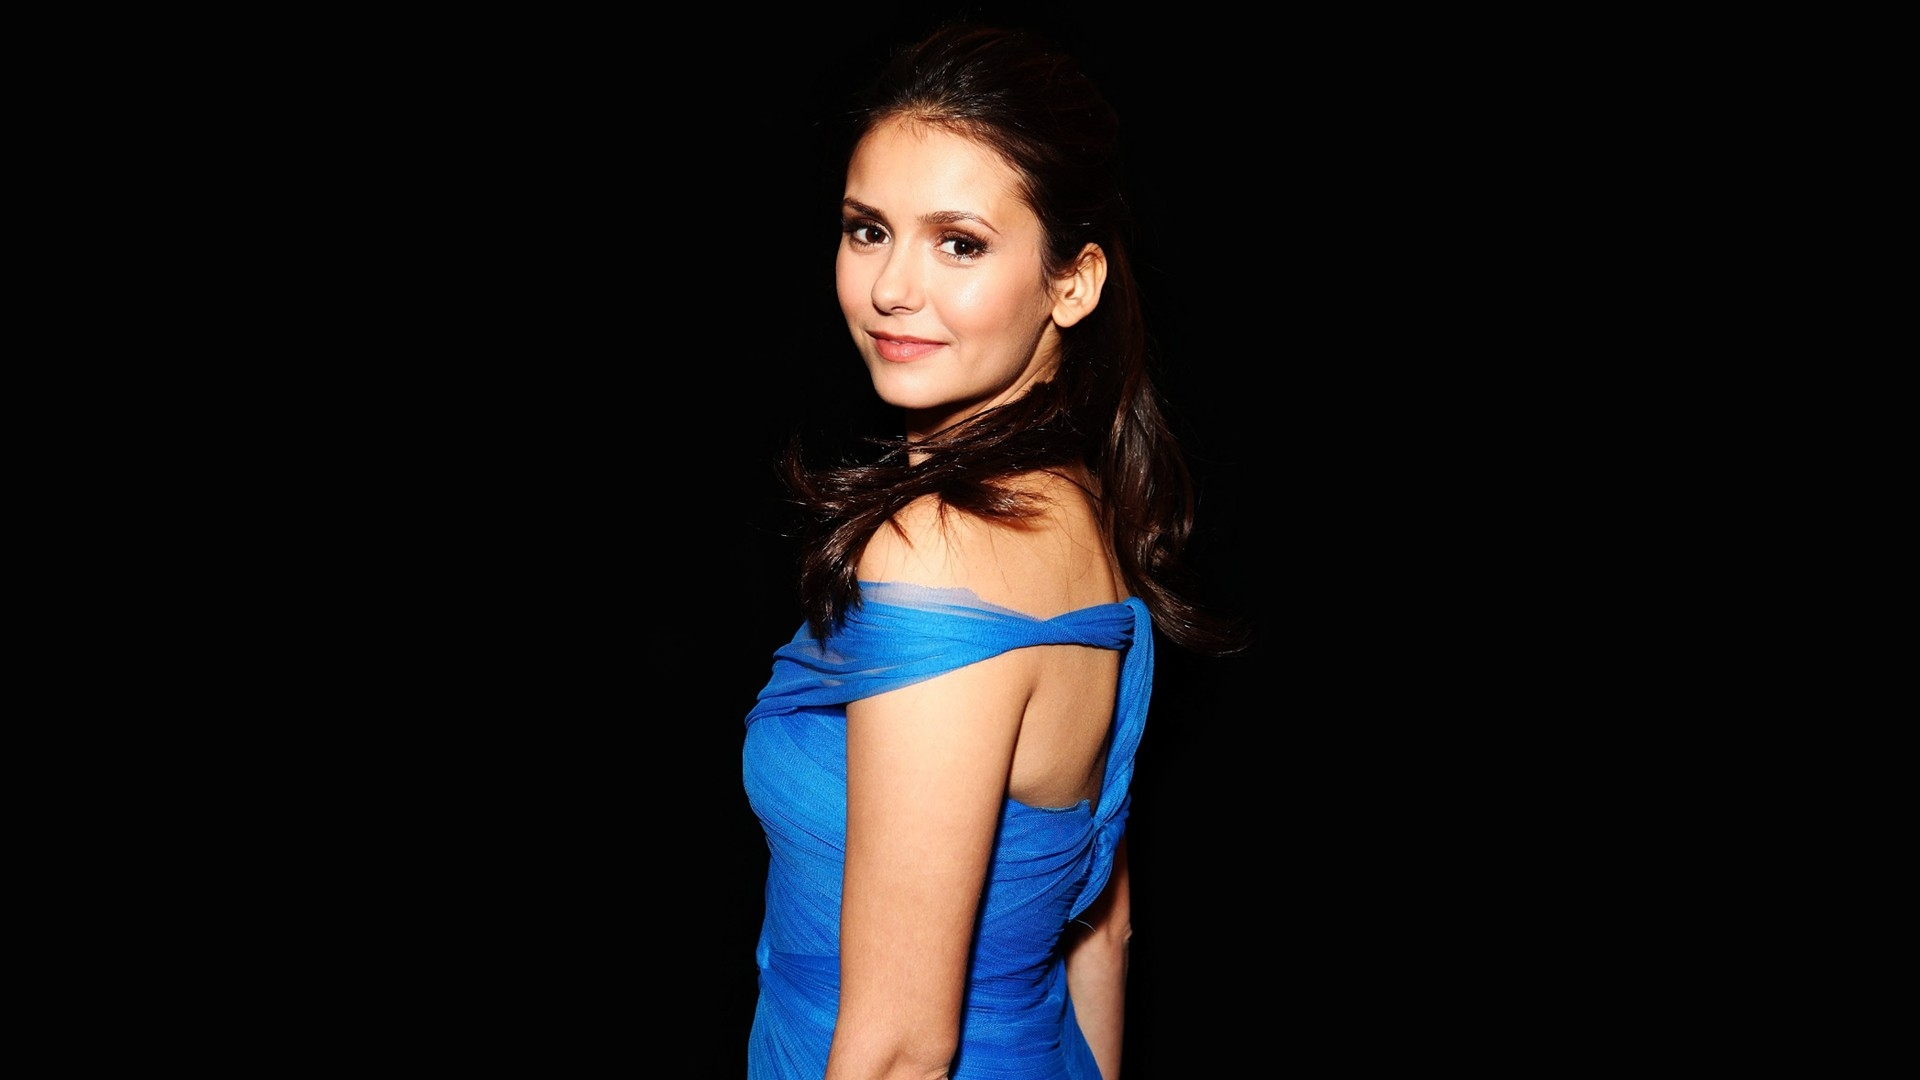 nina dobrev full hd - photo #12